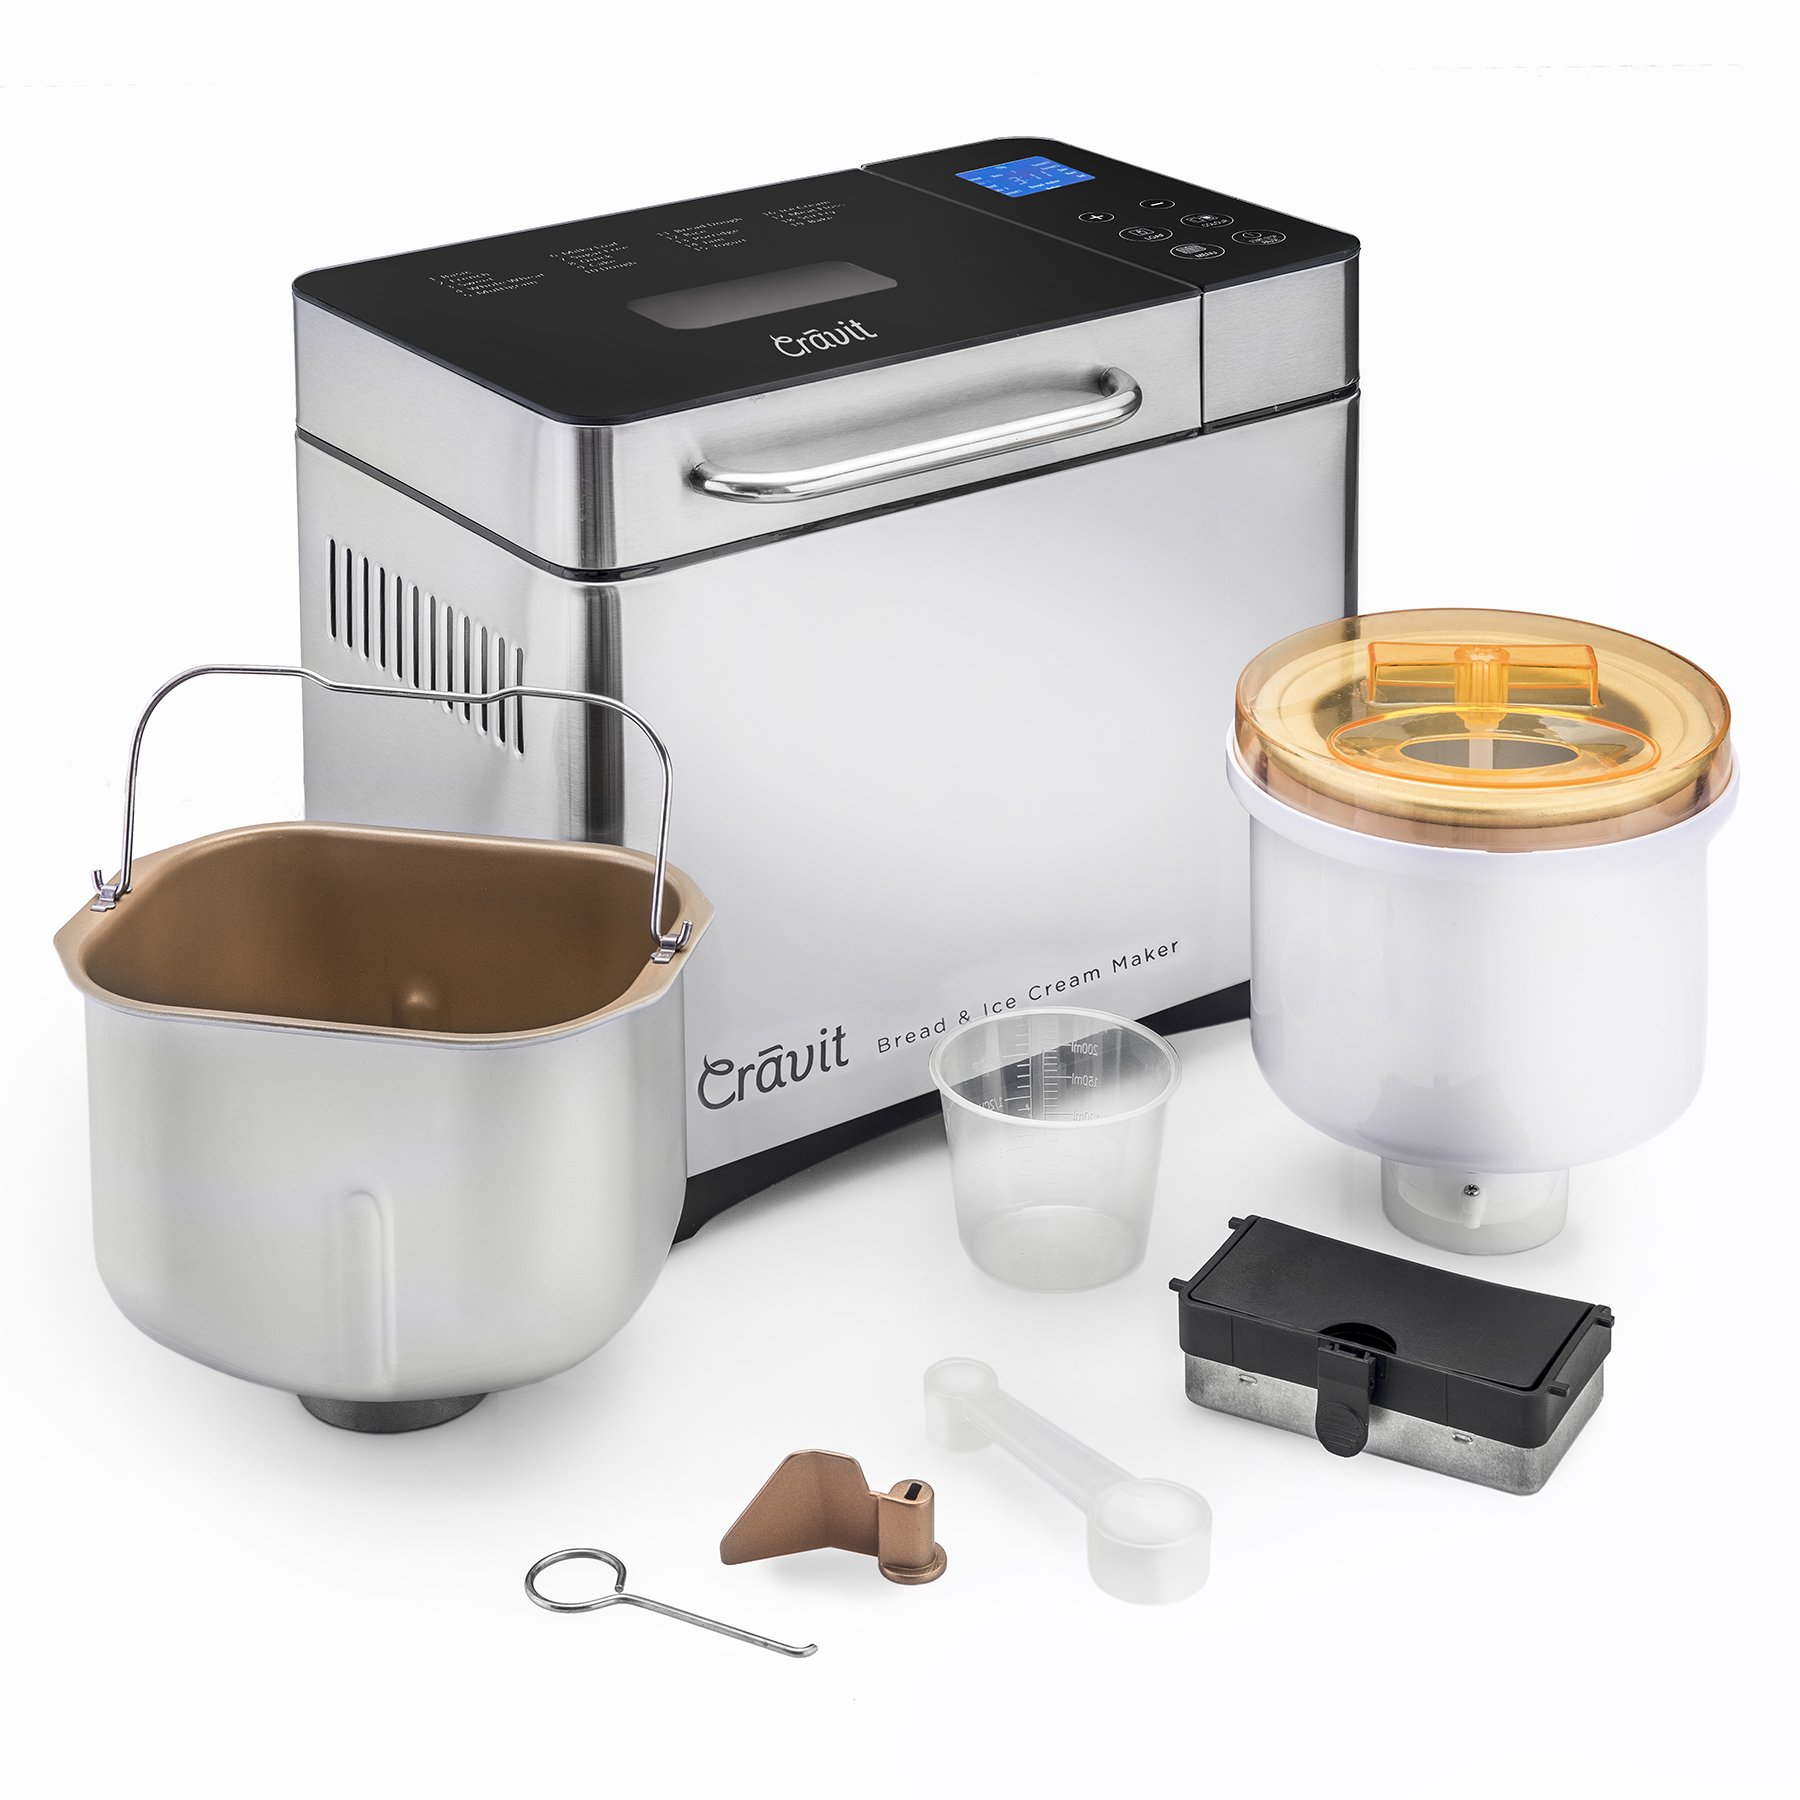 Cravit Bread Machine Virtuoso with ICE CREAM MAKER INCLUDED!!